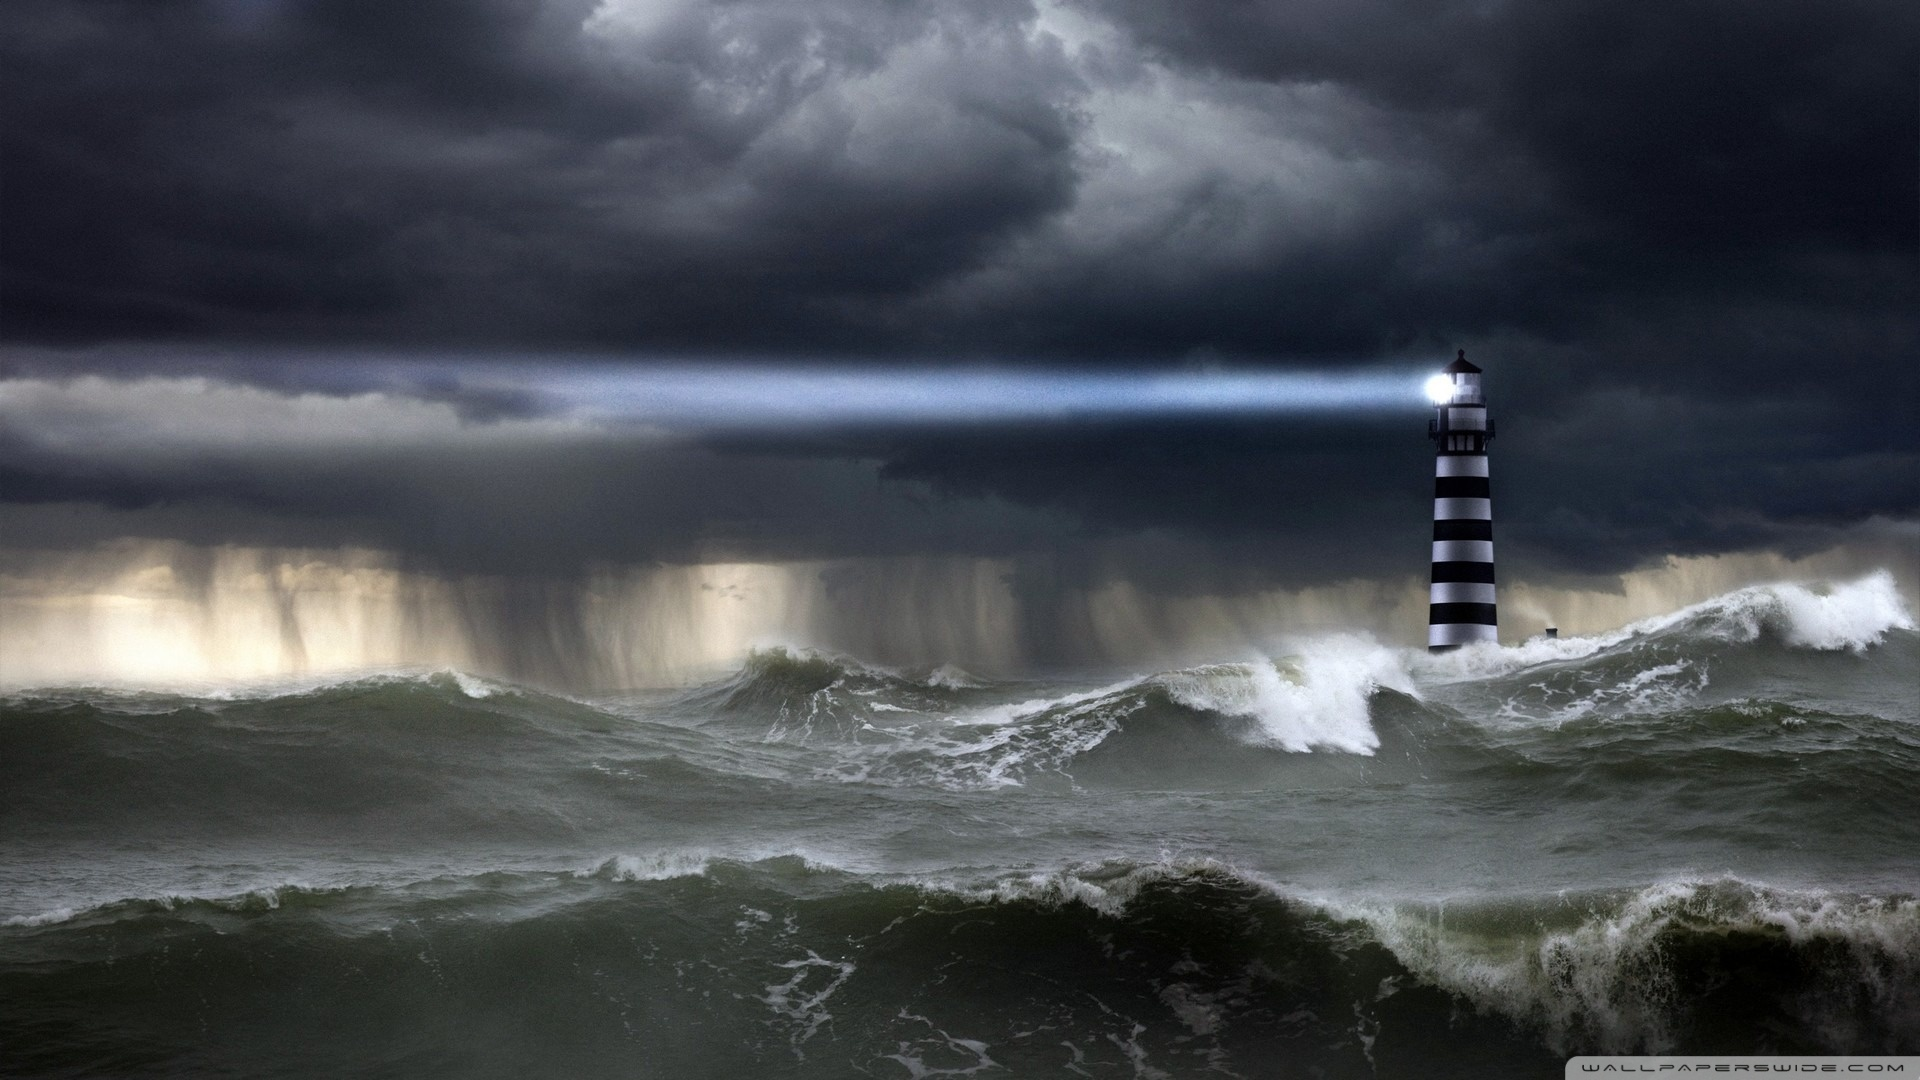 Sea Storm Hd Desktop Wallpaper Widescreen High Definition 1920x1080px